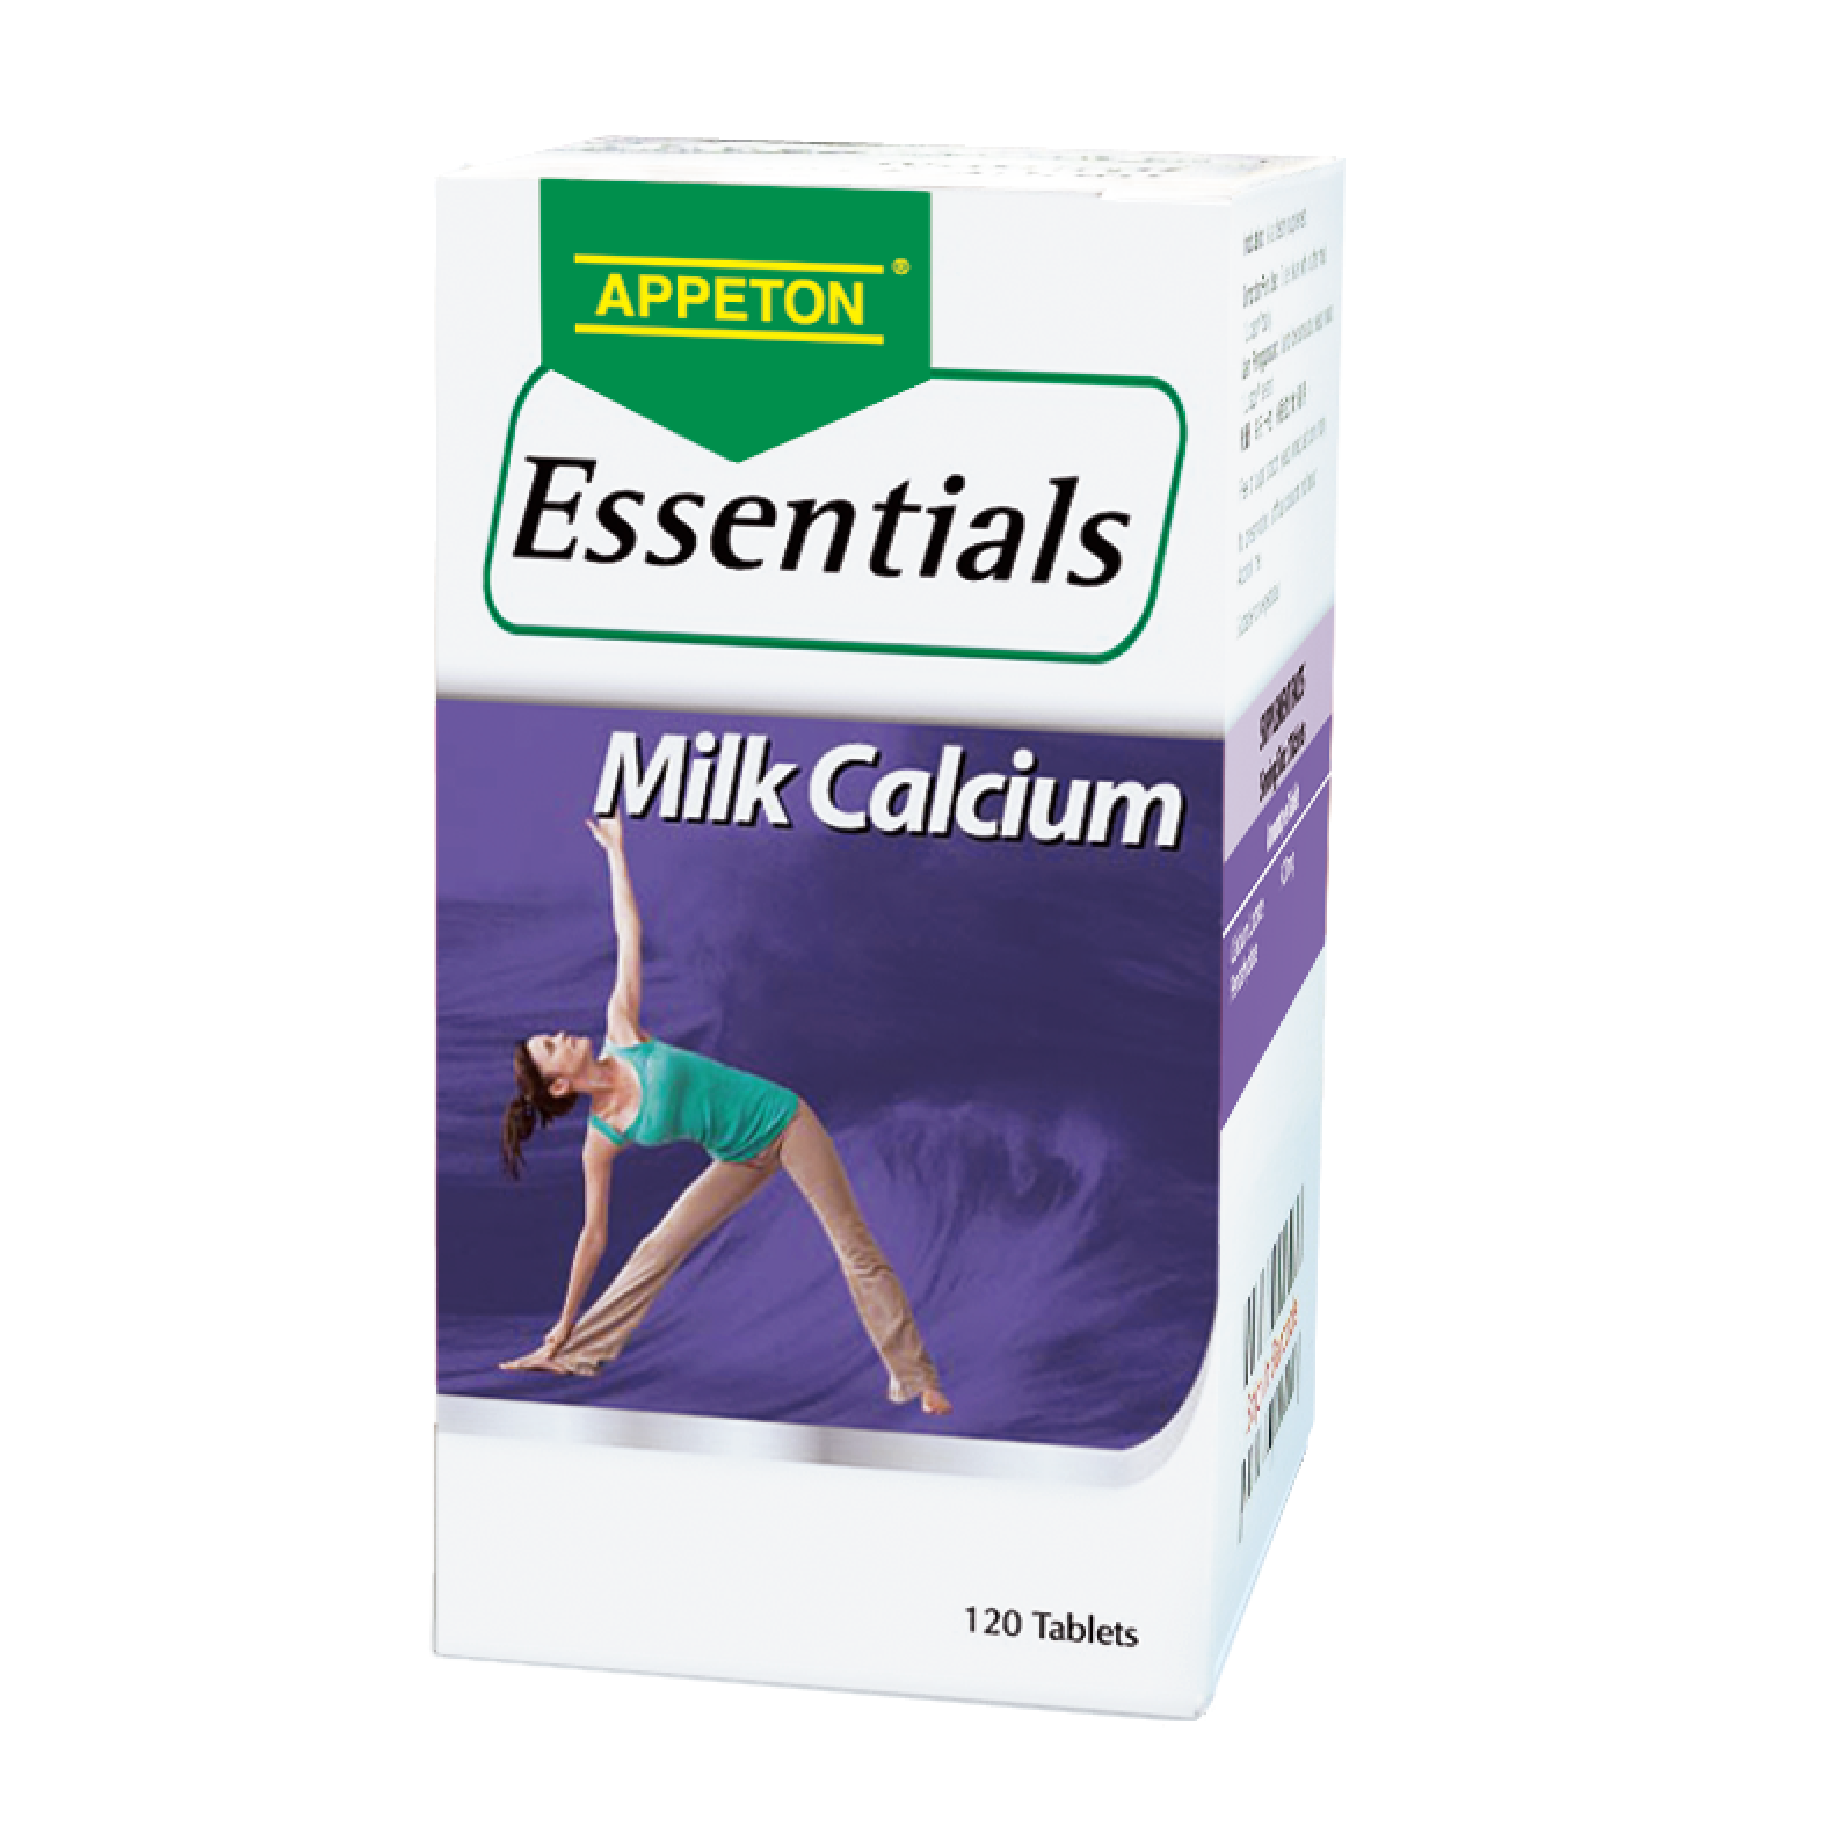 Appeton Essentials Milk Calcium 120 Tablets